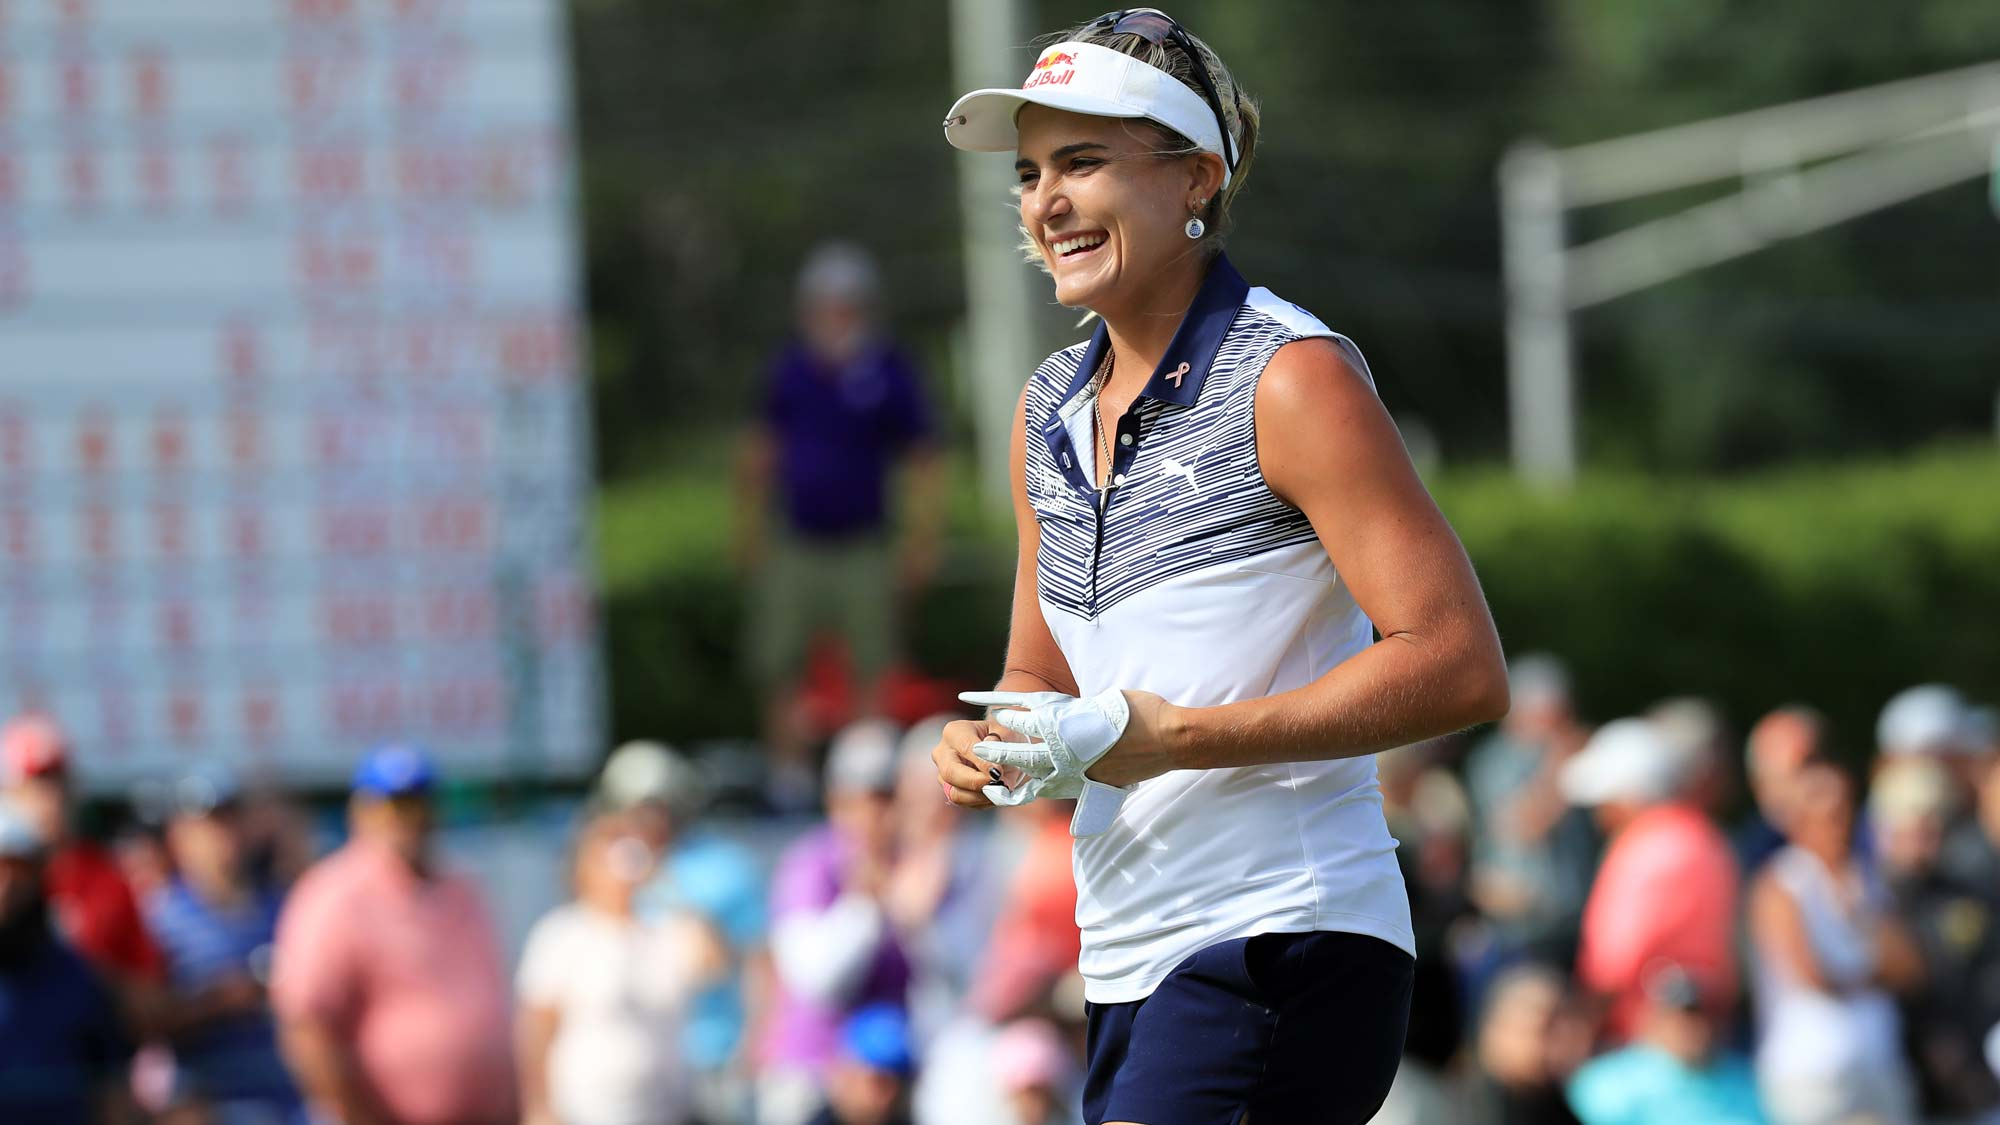 Lexi Thompson smiles as she walks off the green after making a putt for eagle on the 18th hole during the final round of the ShopRite LPGA Classic presented by Acer